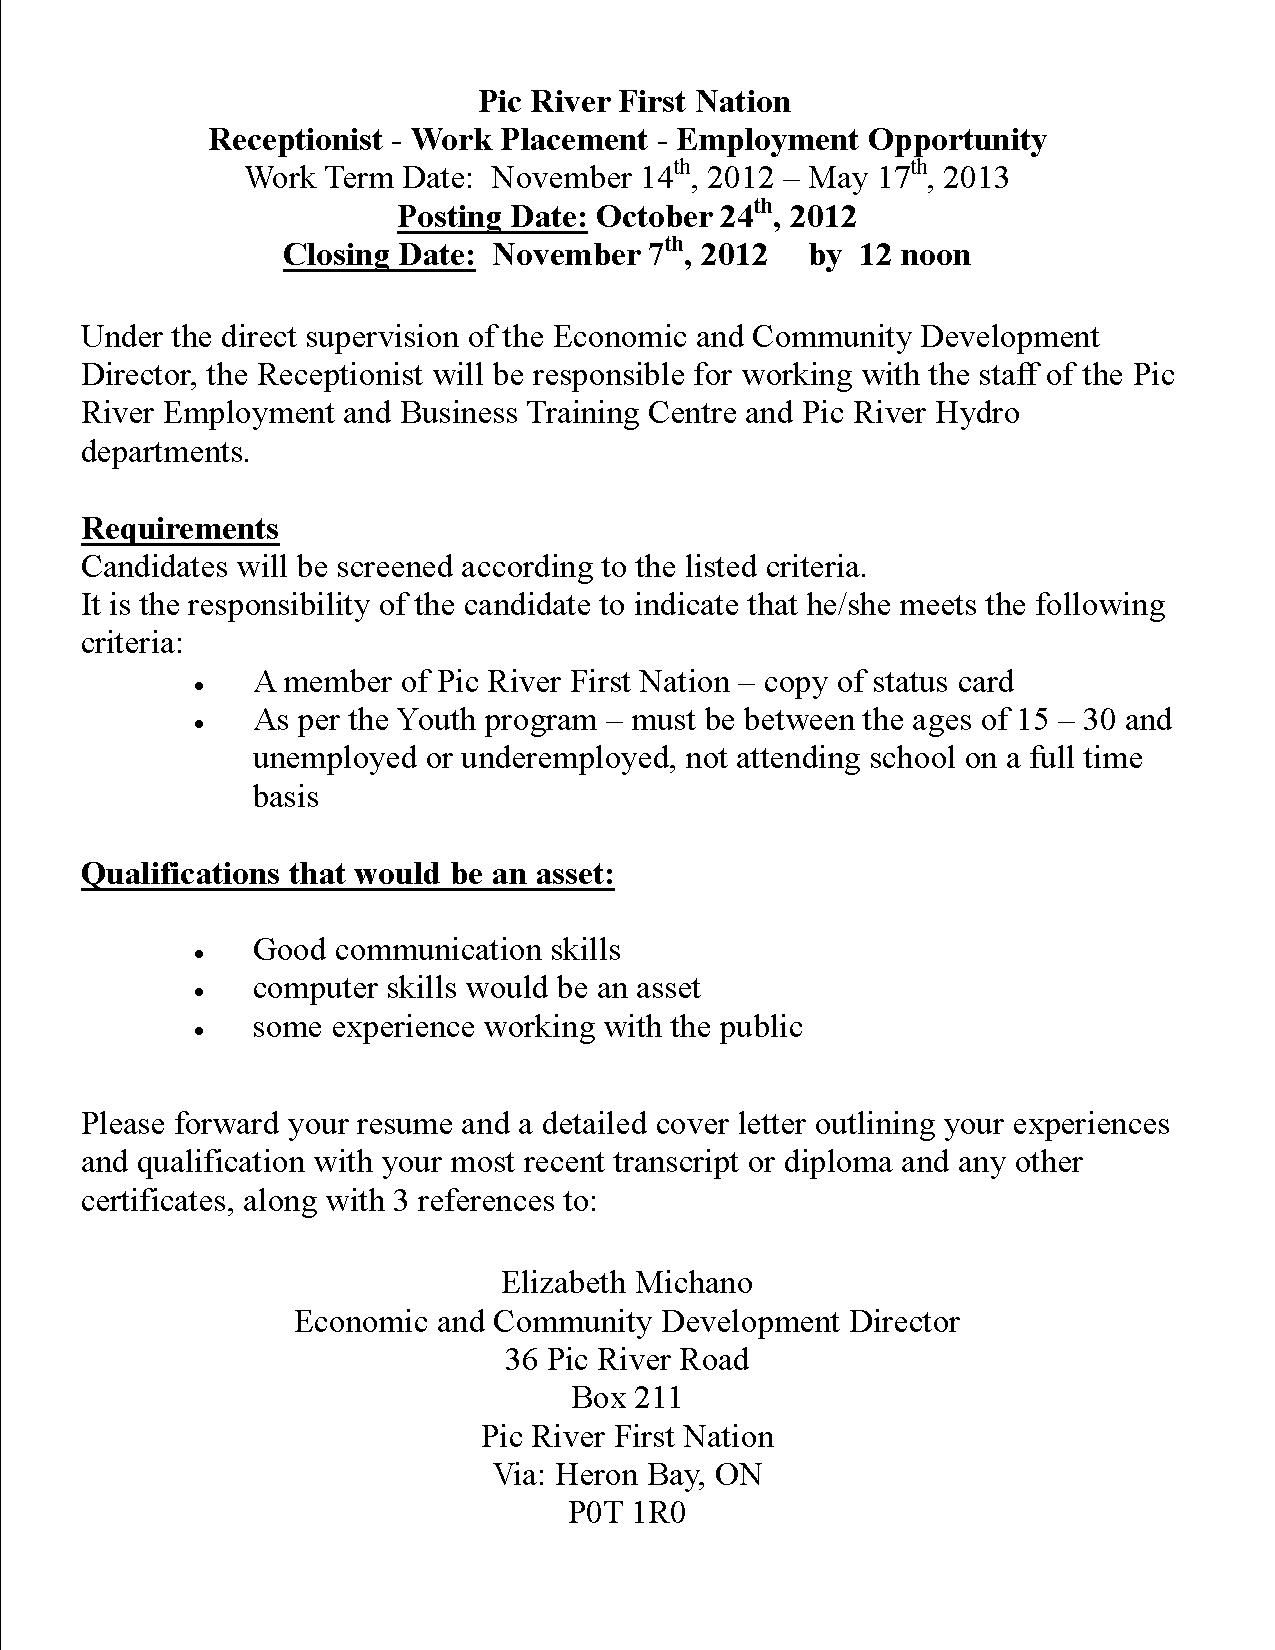 Sample Resume For Receptionist Fascinating Medical Office Receptionist Resume Objective Sample Scholarship Decorating Inspiration